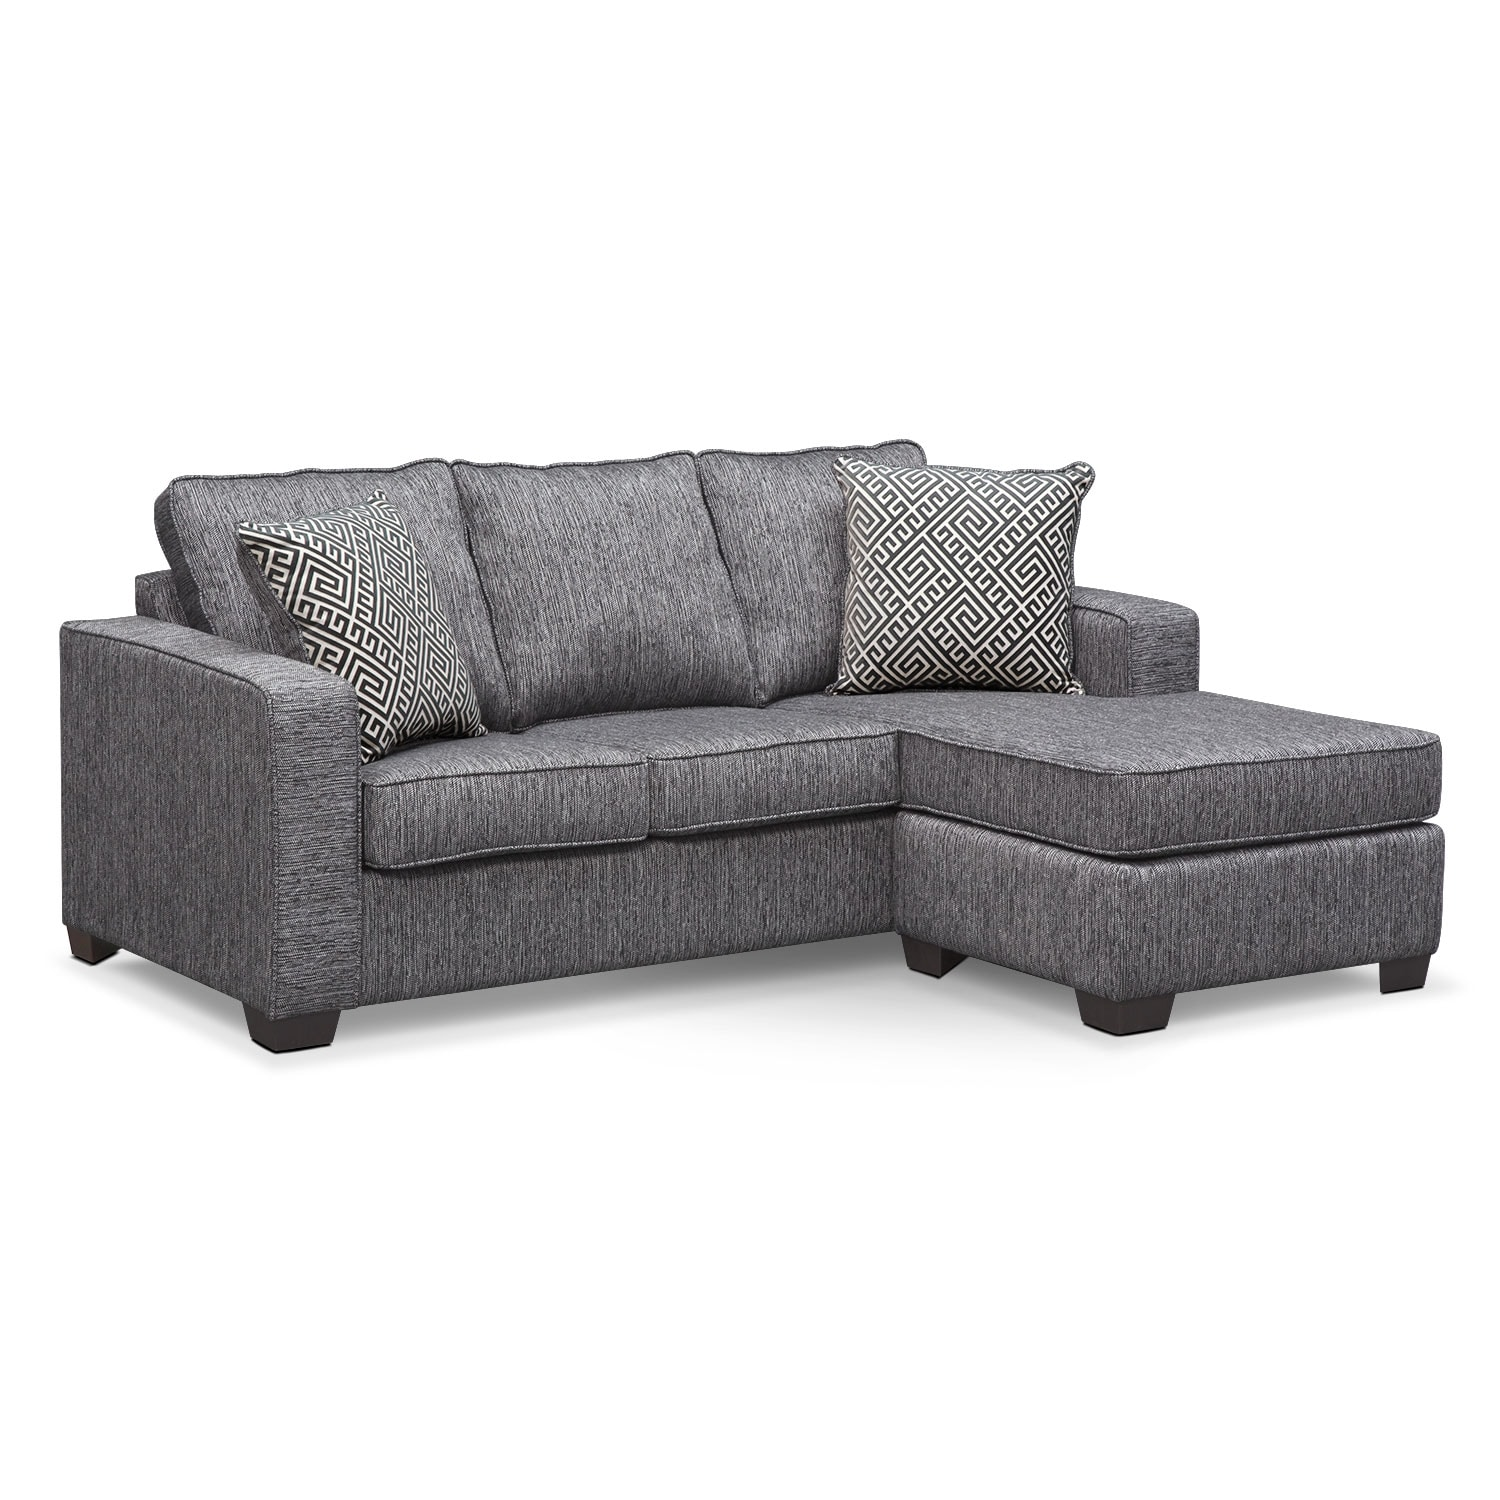 sterling sofa usado olx goiania innerspring sleeper with chaise charcoal